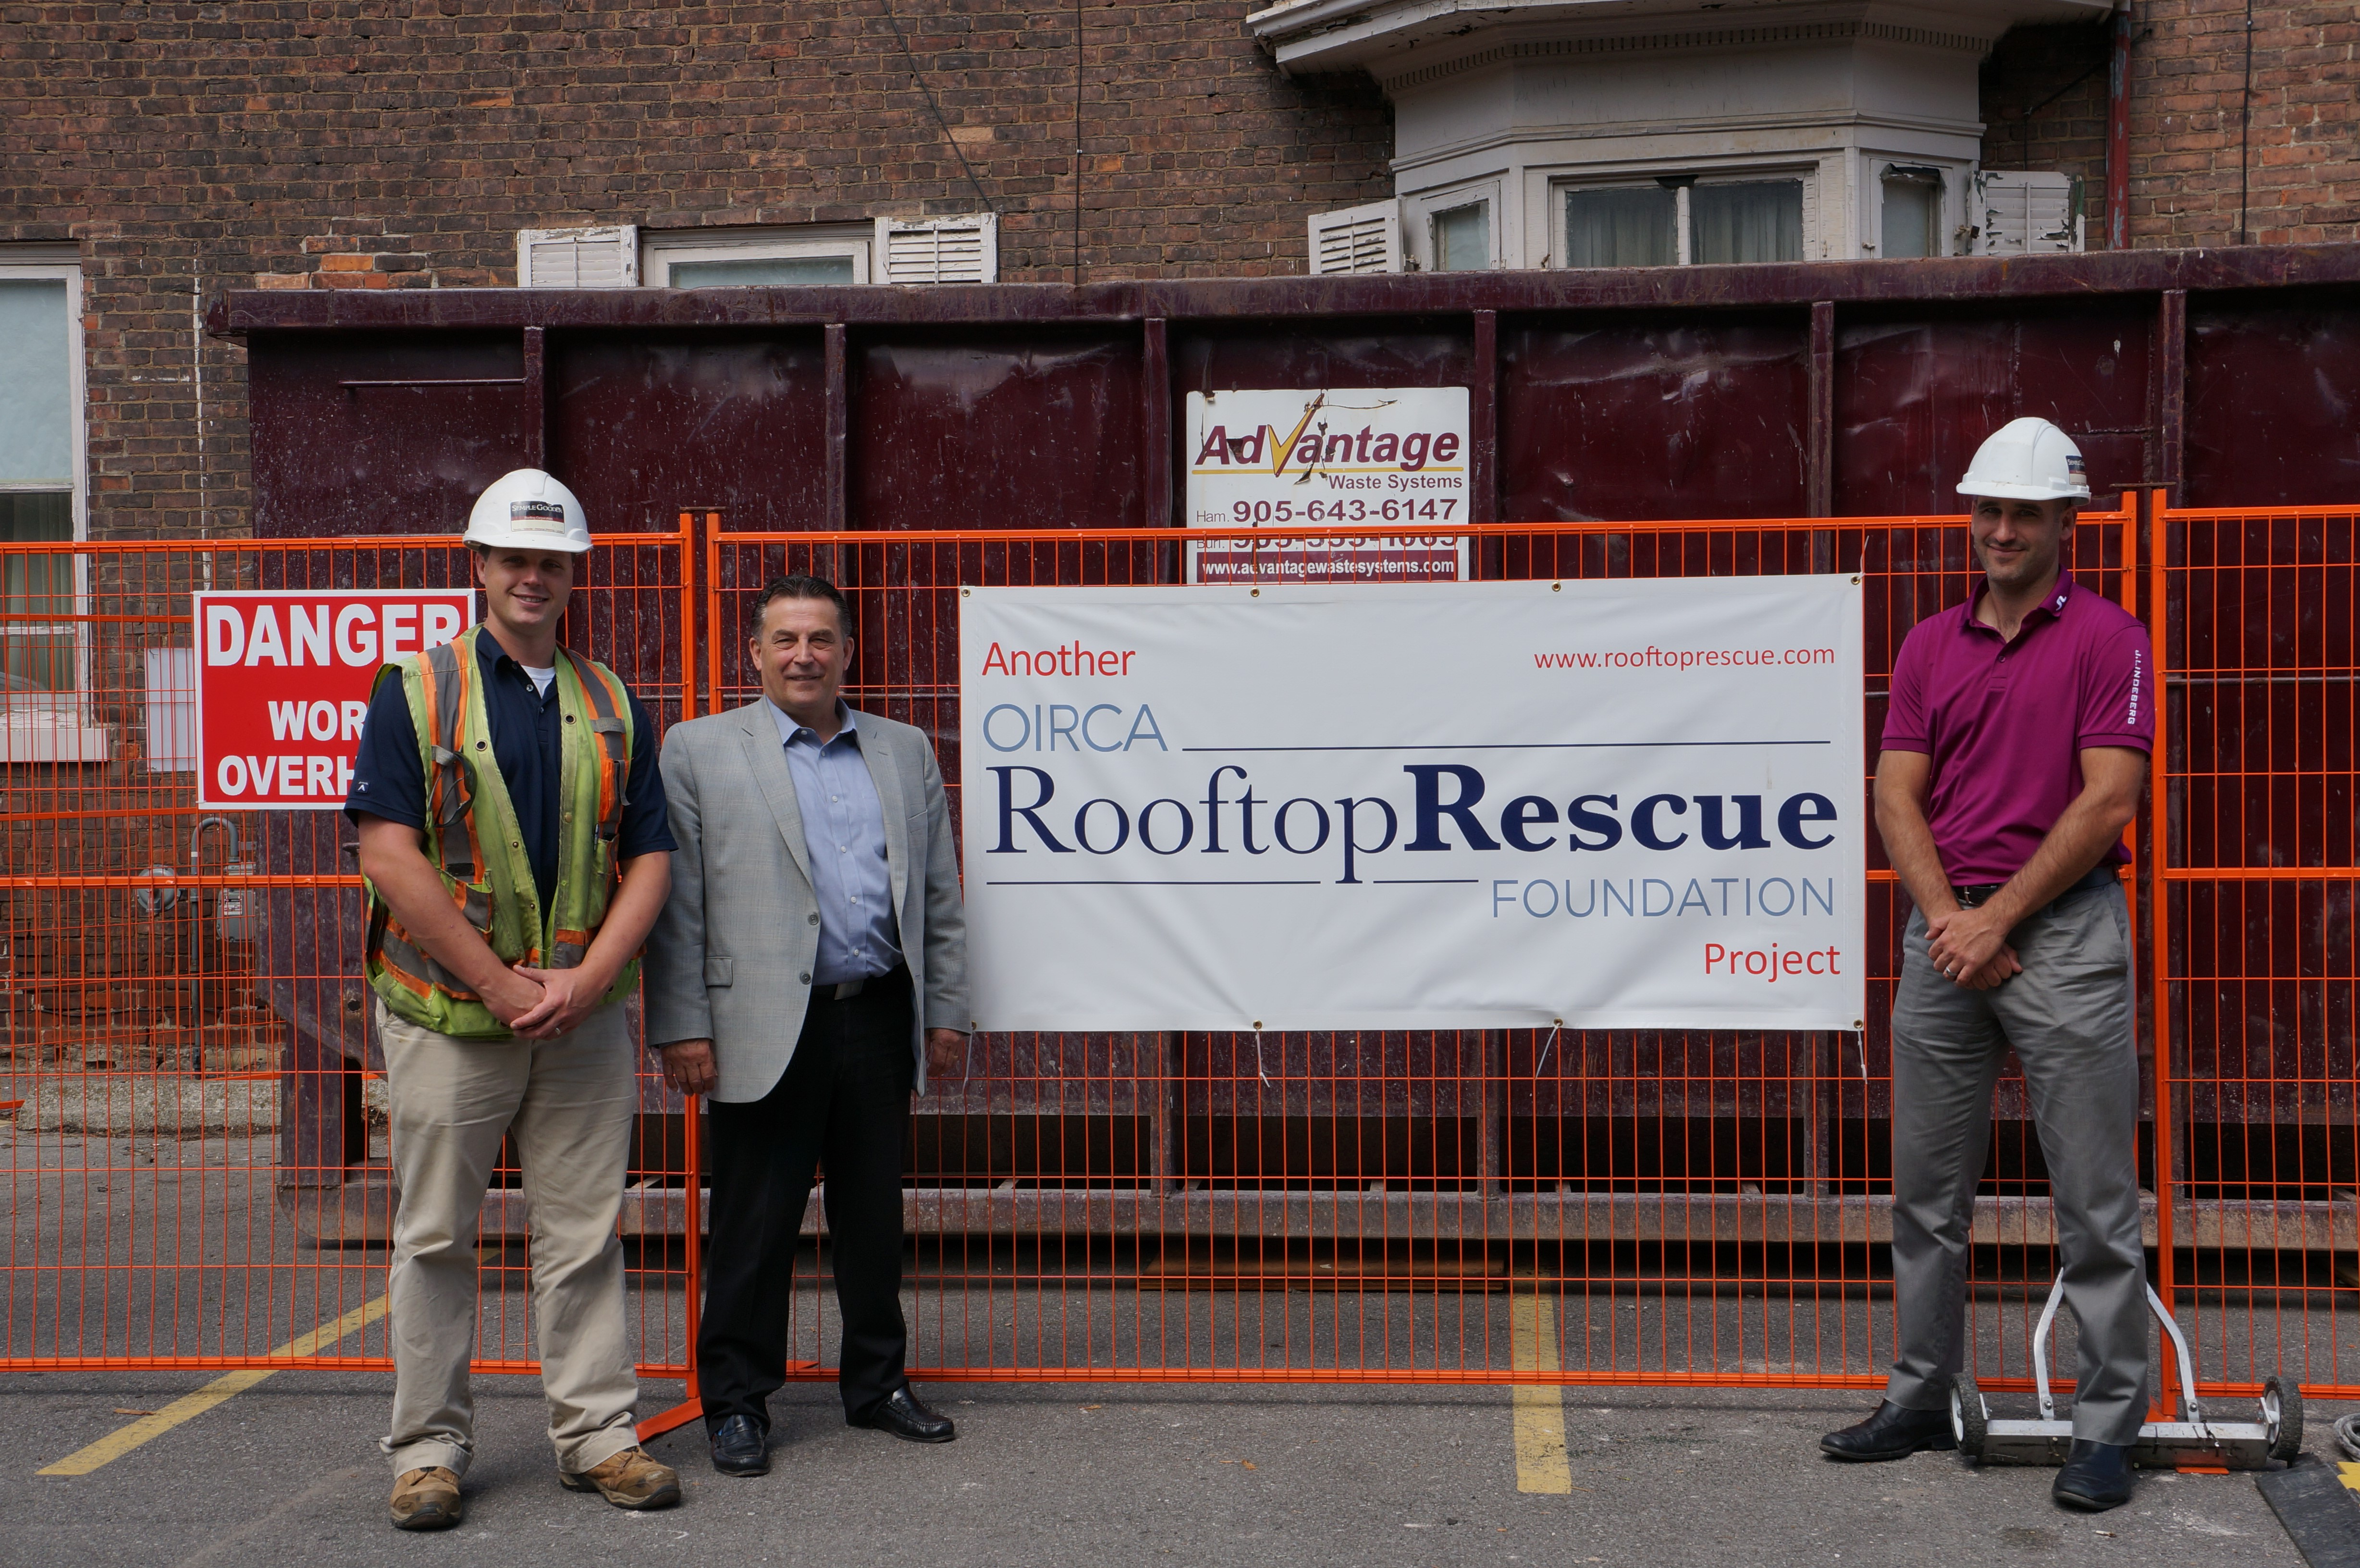 Left to Right: Dan Boyce (Superintendent, Semple-Gooder Roofing), Doug Brown (Convoy Supply) and Mark Baxter (Semple Gooder Roofing)